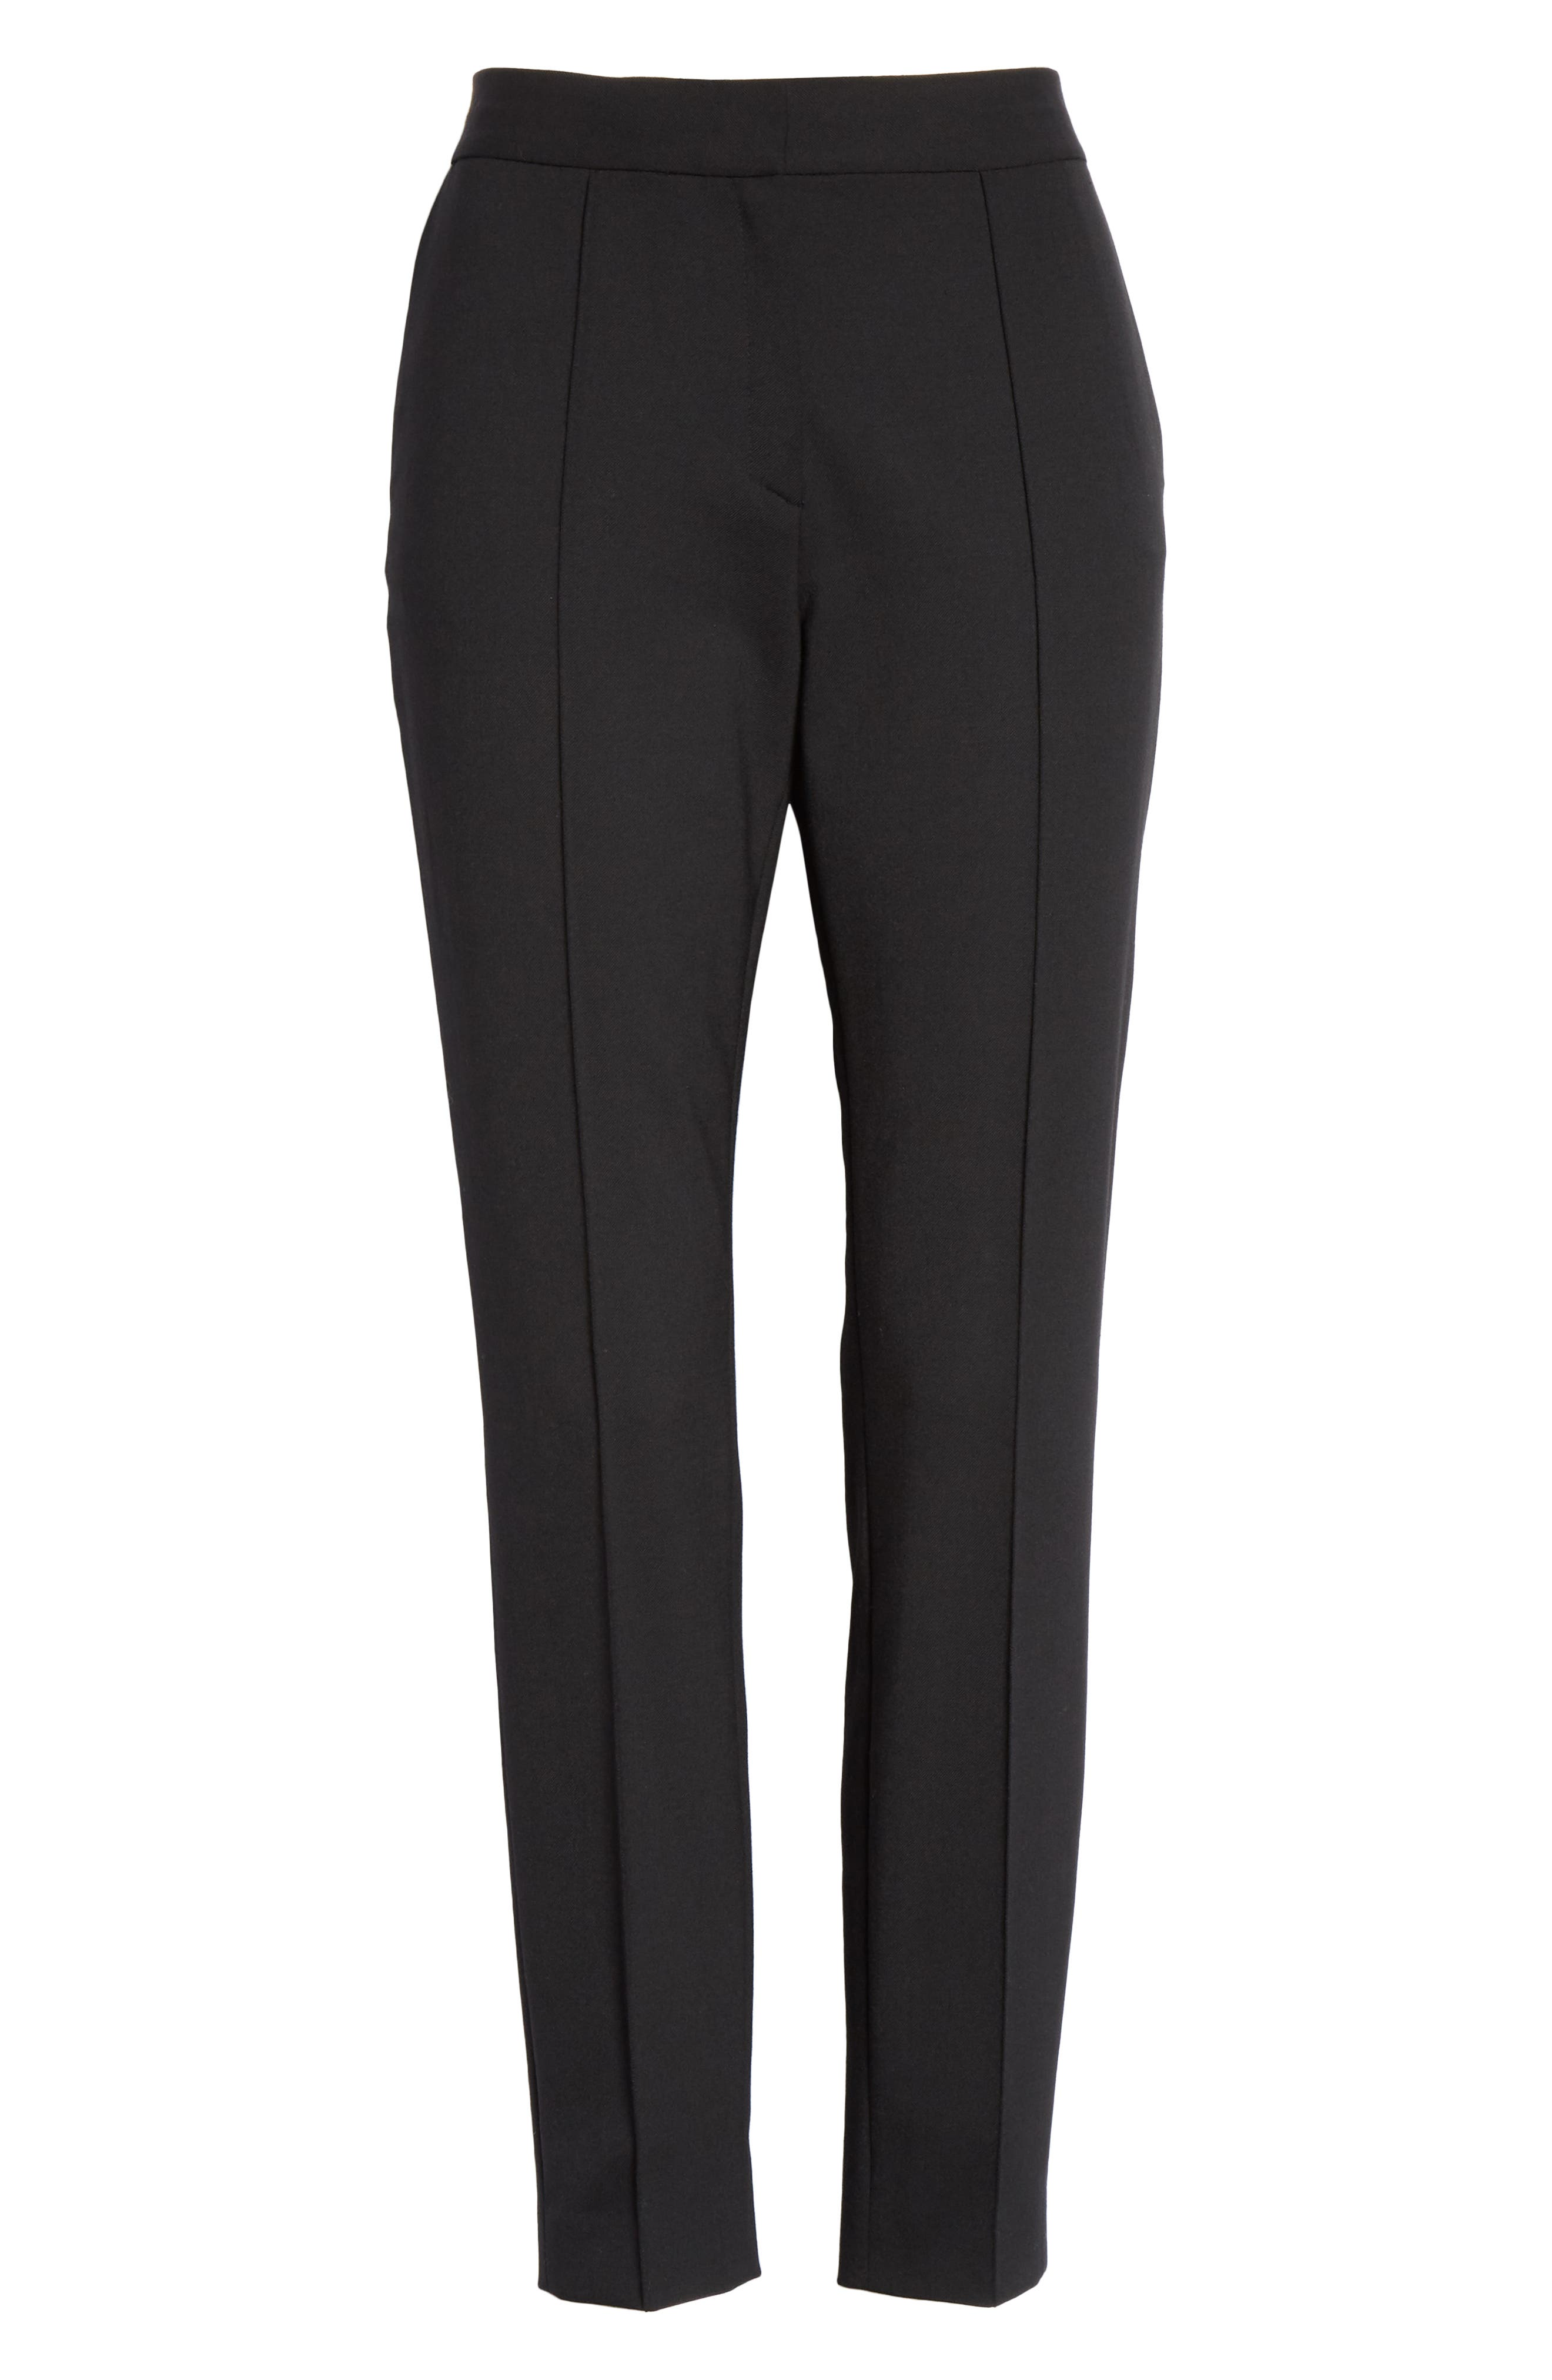 Pintucked Stretch Wool Blend Slim Trousers,                             Alternate thumbnail 6, color,                             BLACK